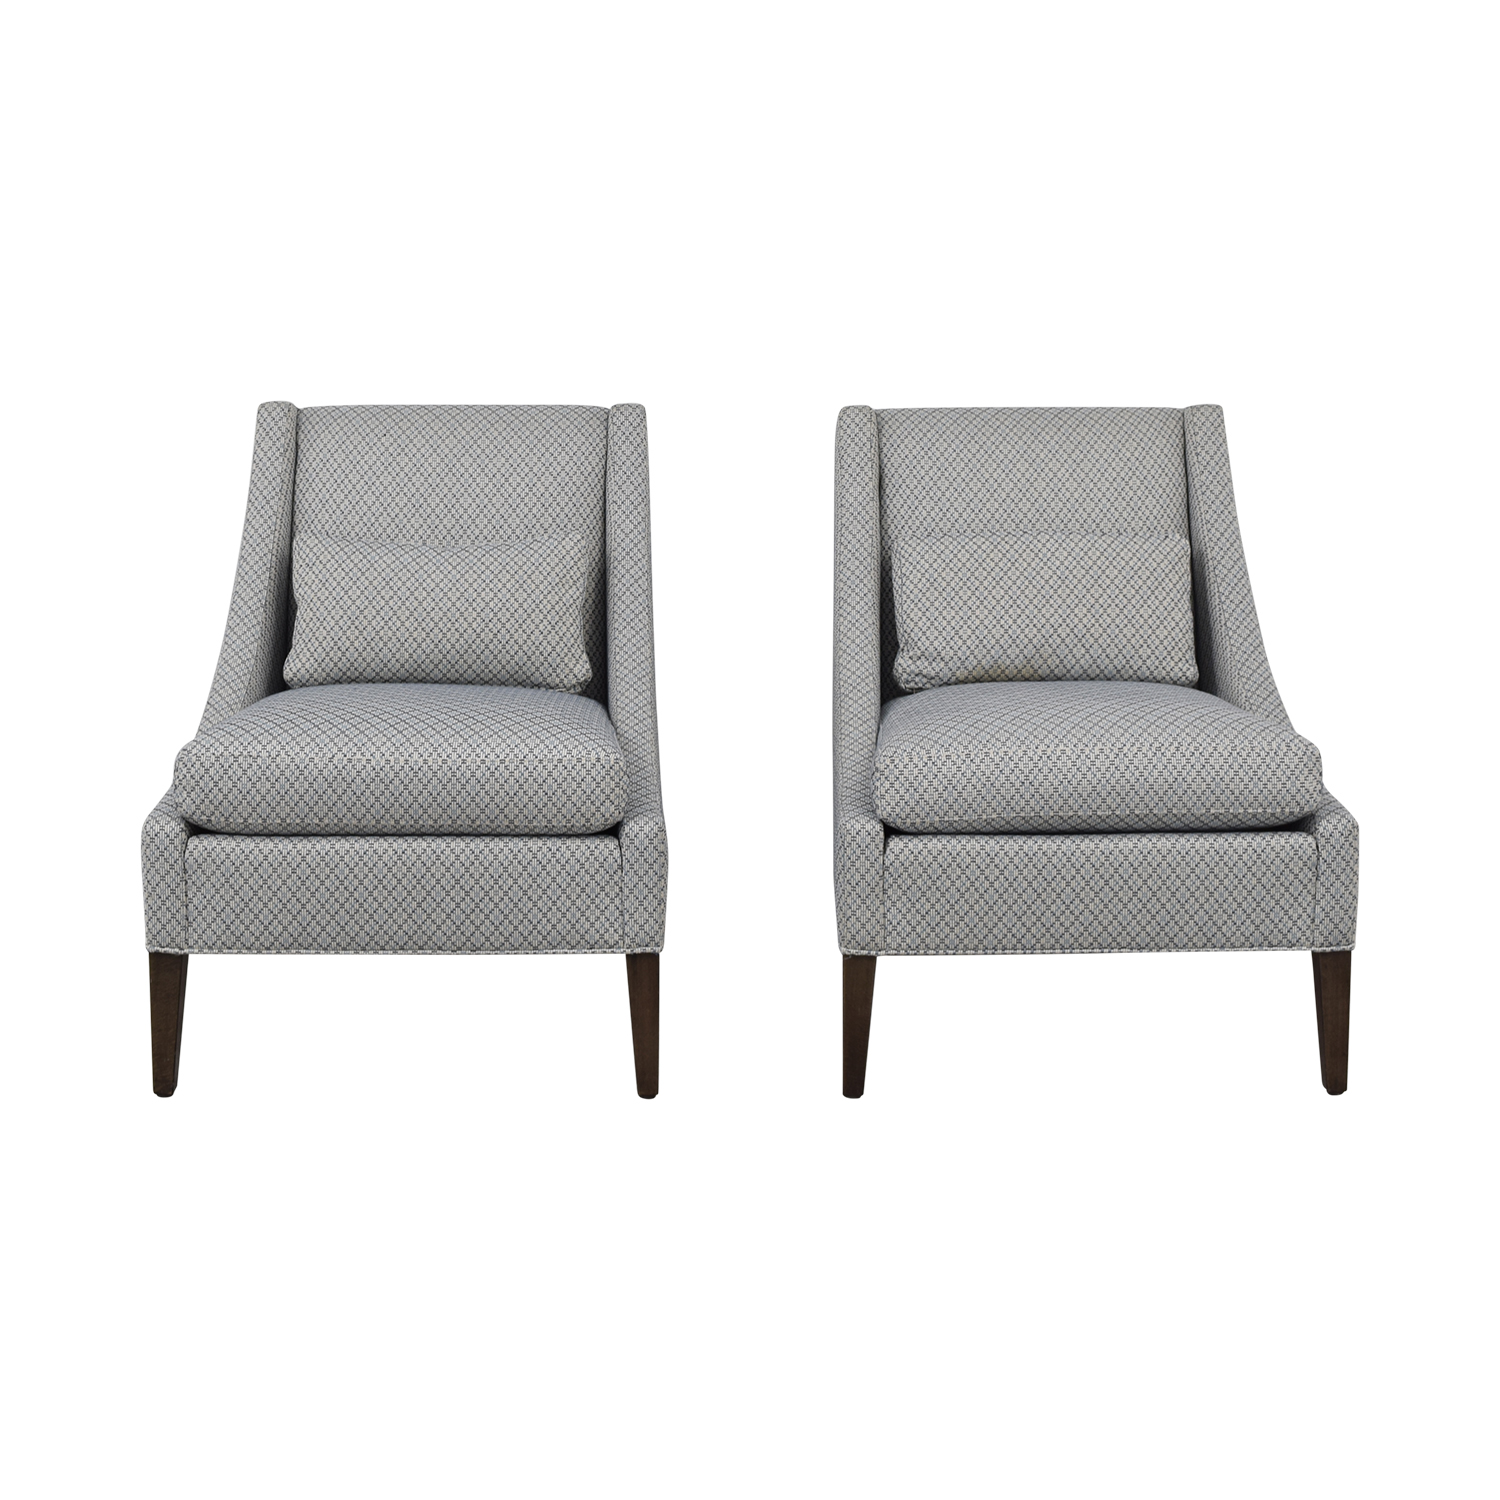 Ethan Allen Ethan Allen Slipper Chair Set discount